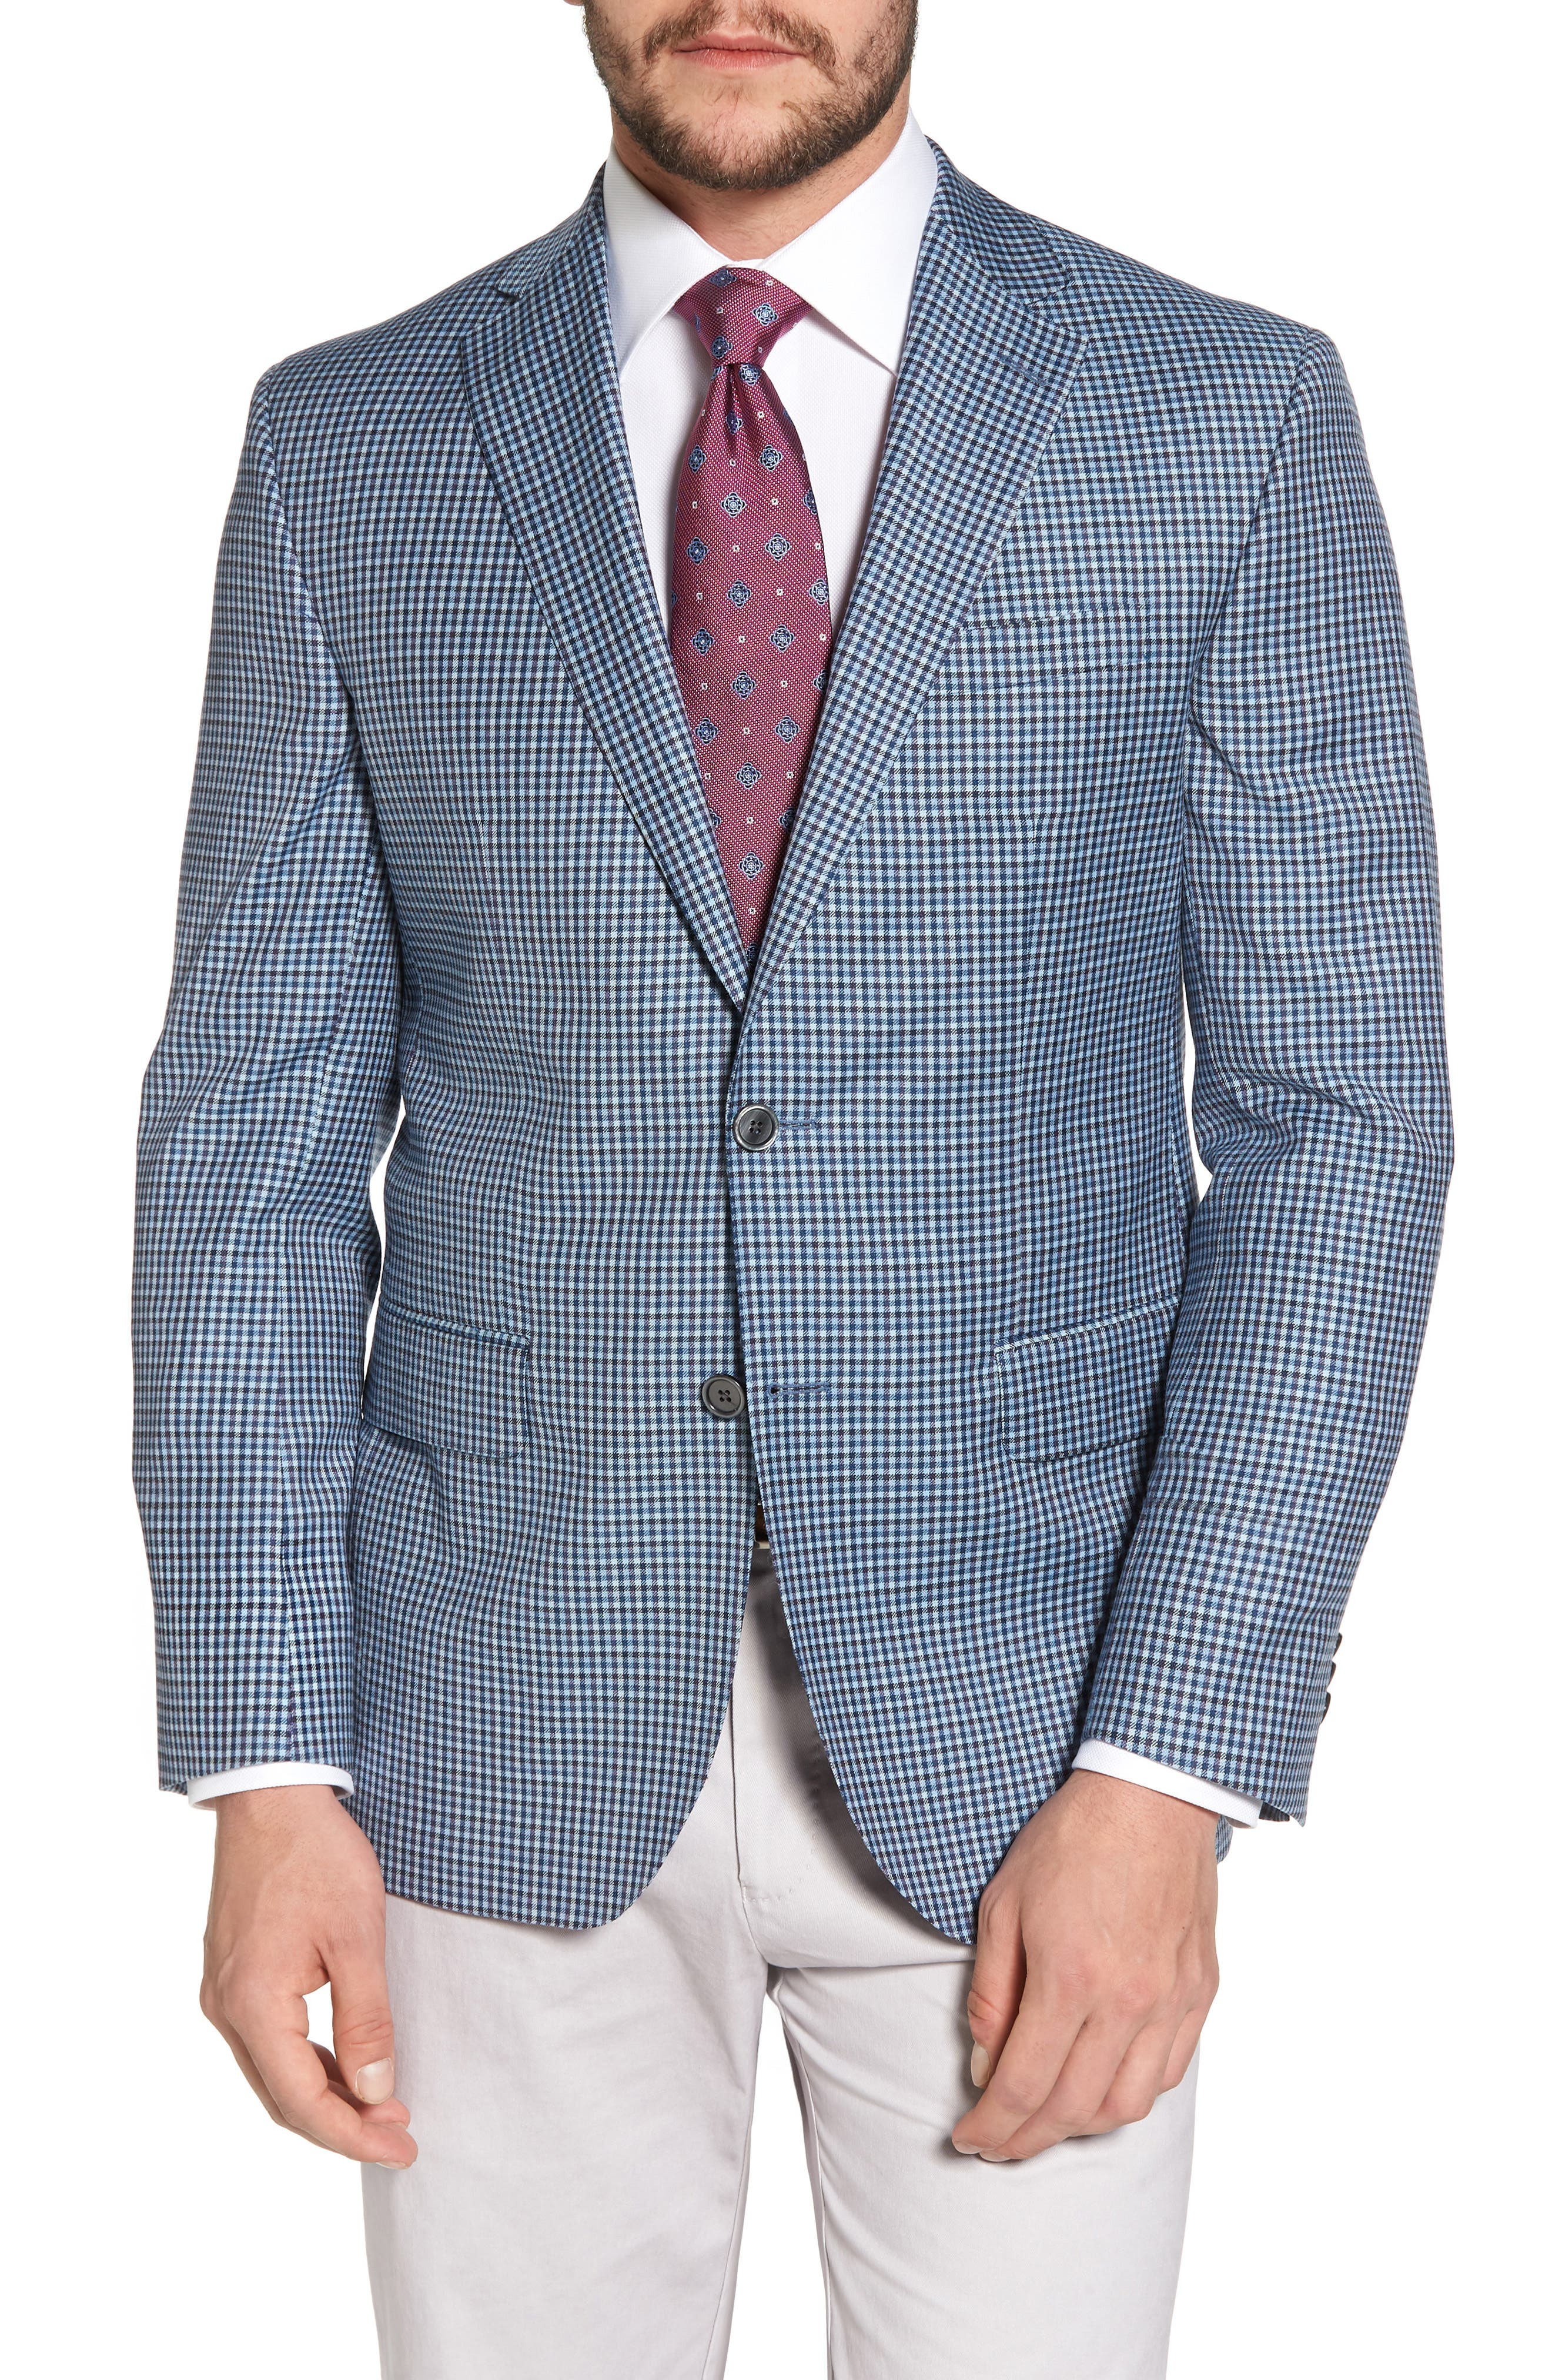 Arnold Classic Fit Check Wool Sport Coat,                         Main,                         color, 400